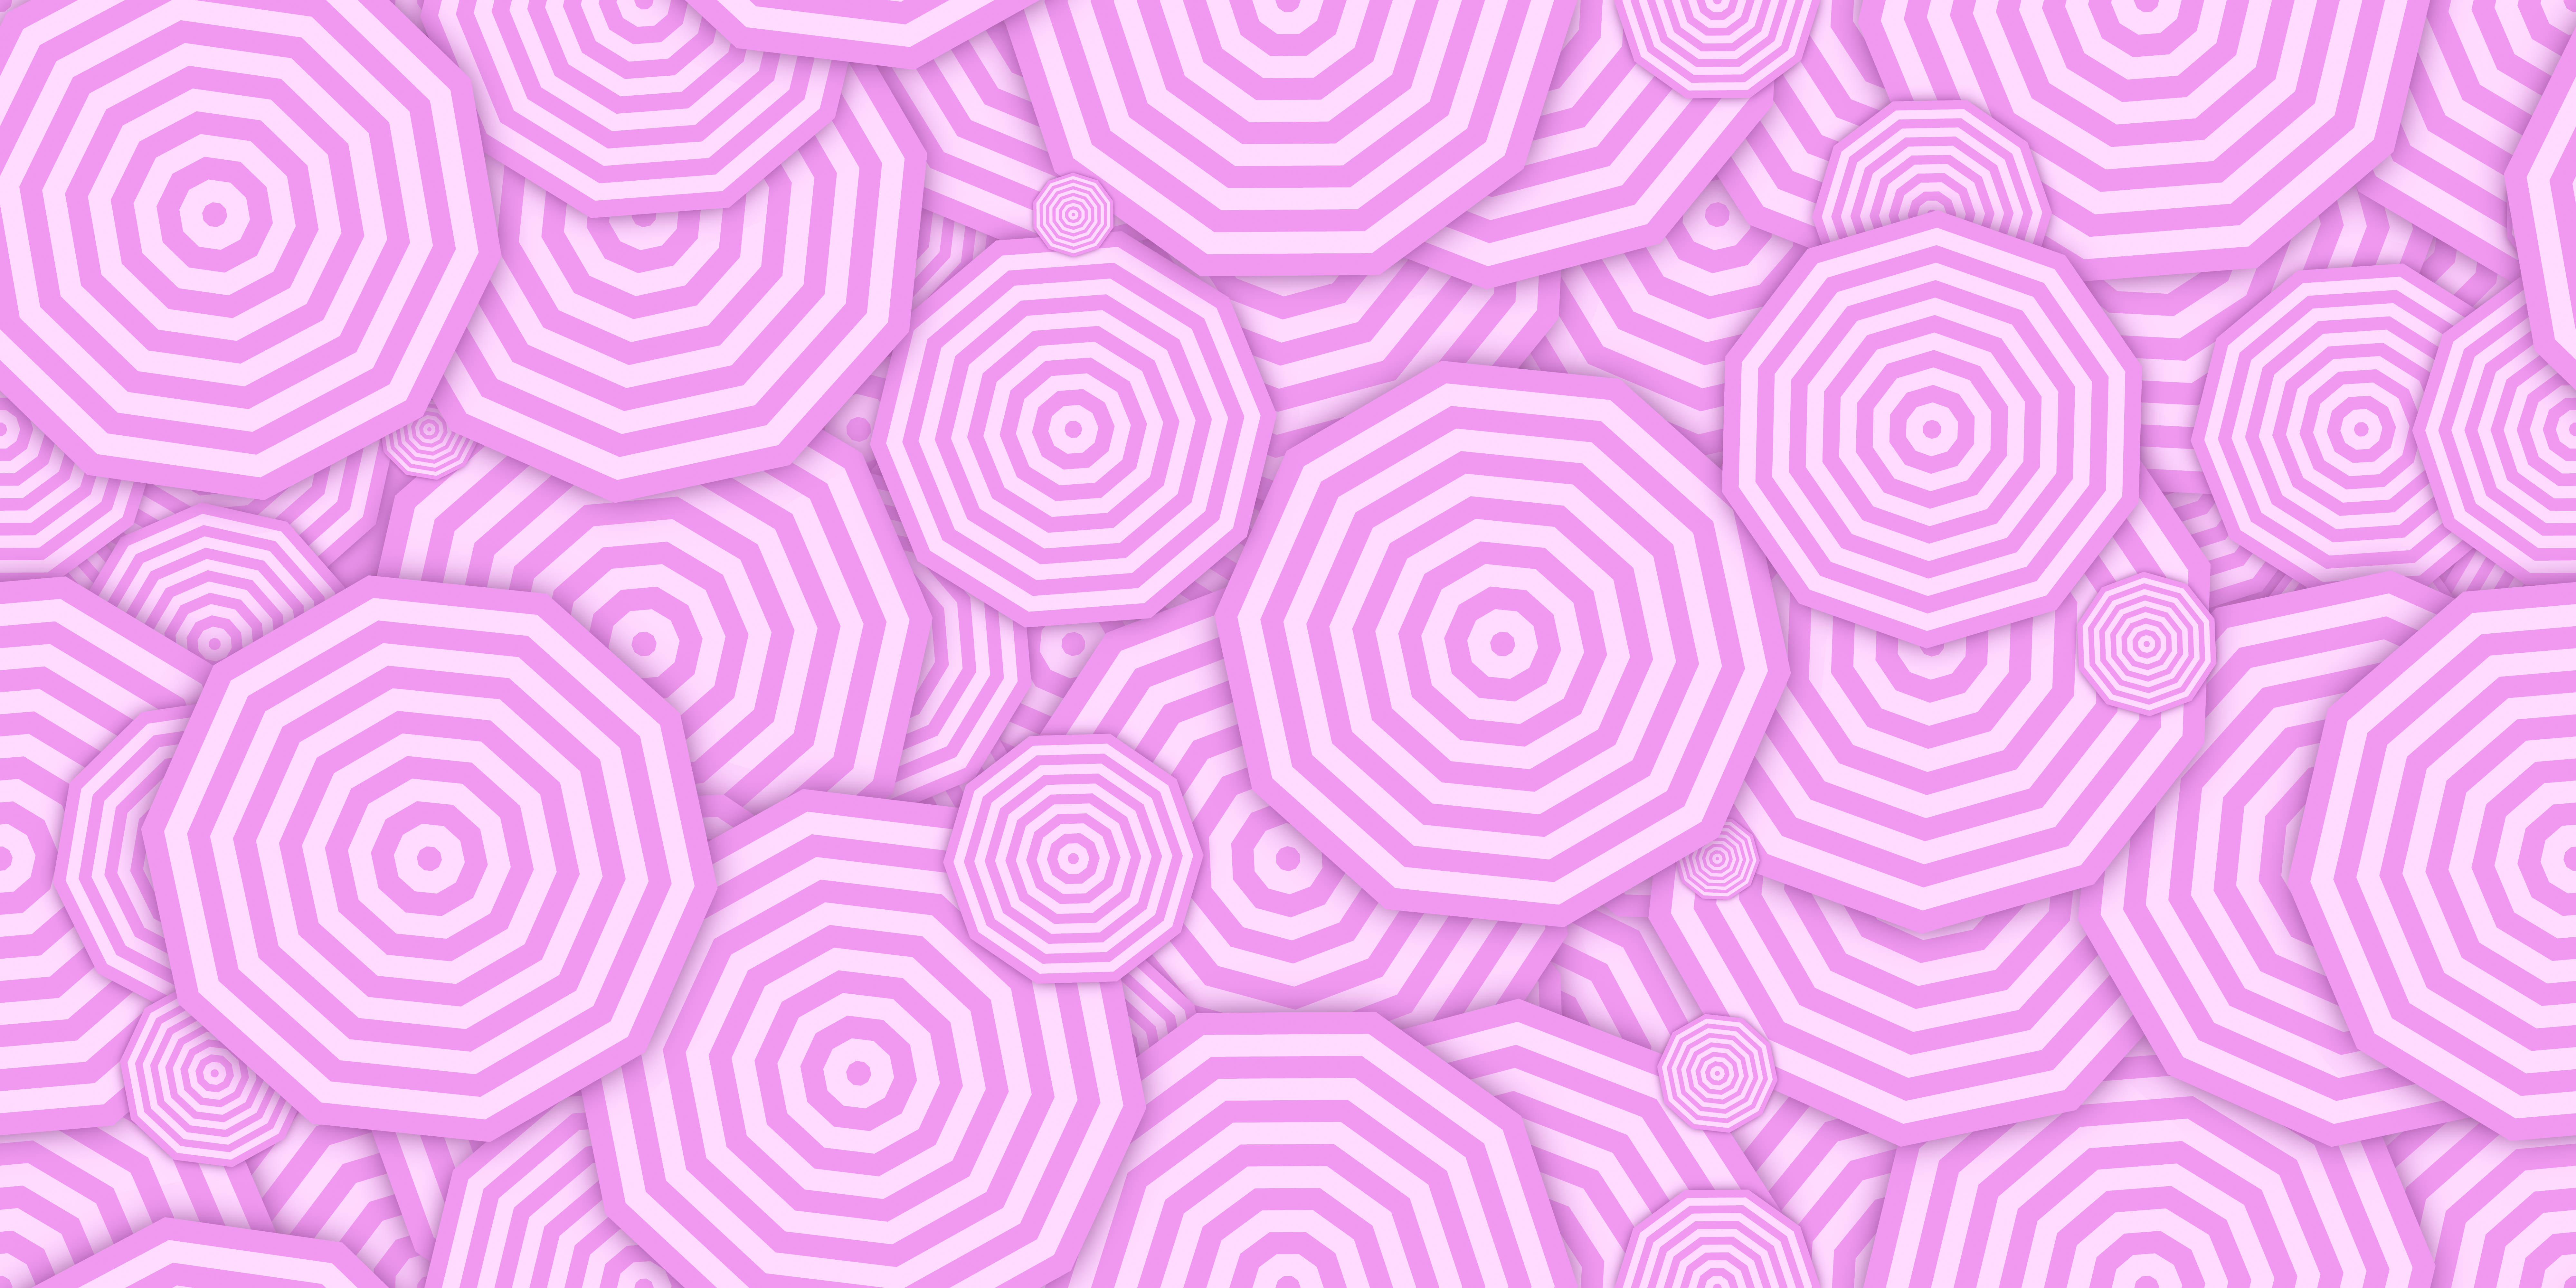 Pink concentric polygons background